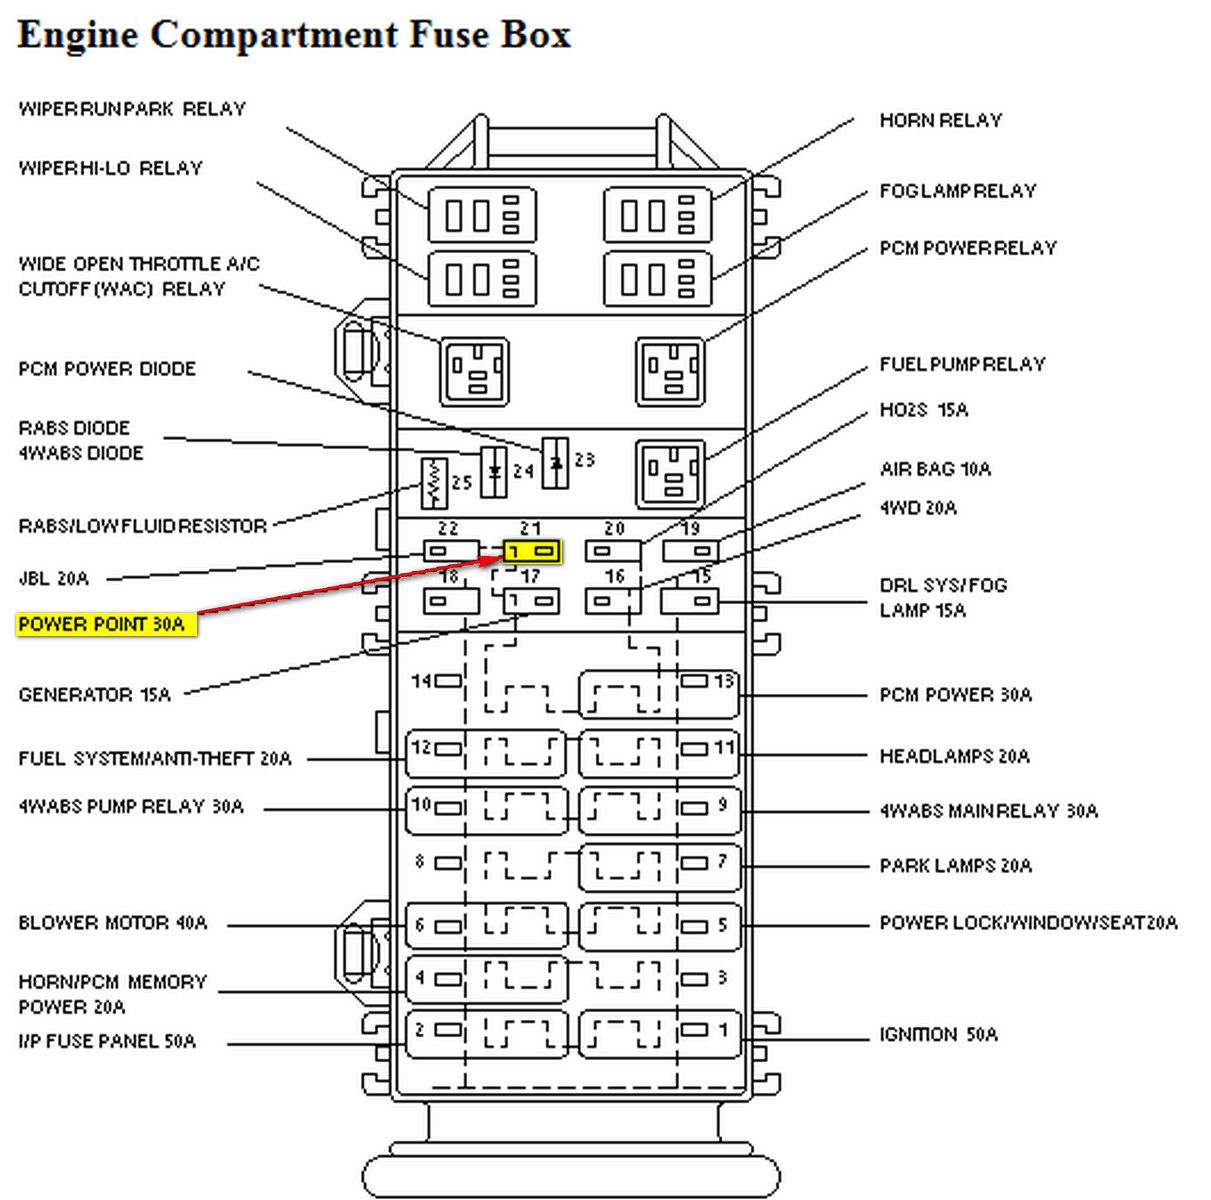 medium resolution of 2002 ford ranger fuse diagram 1997 ford ranger fuse box diagram